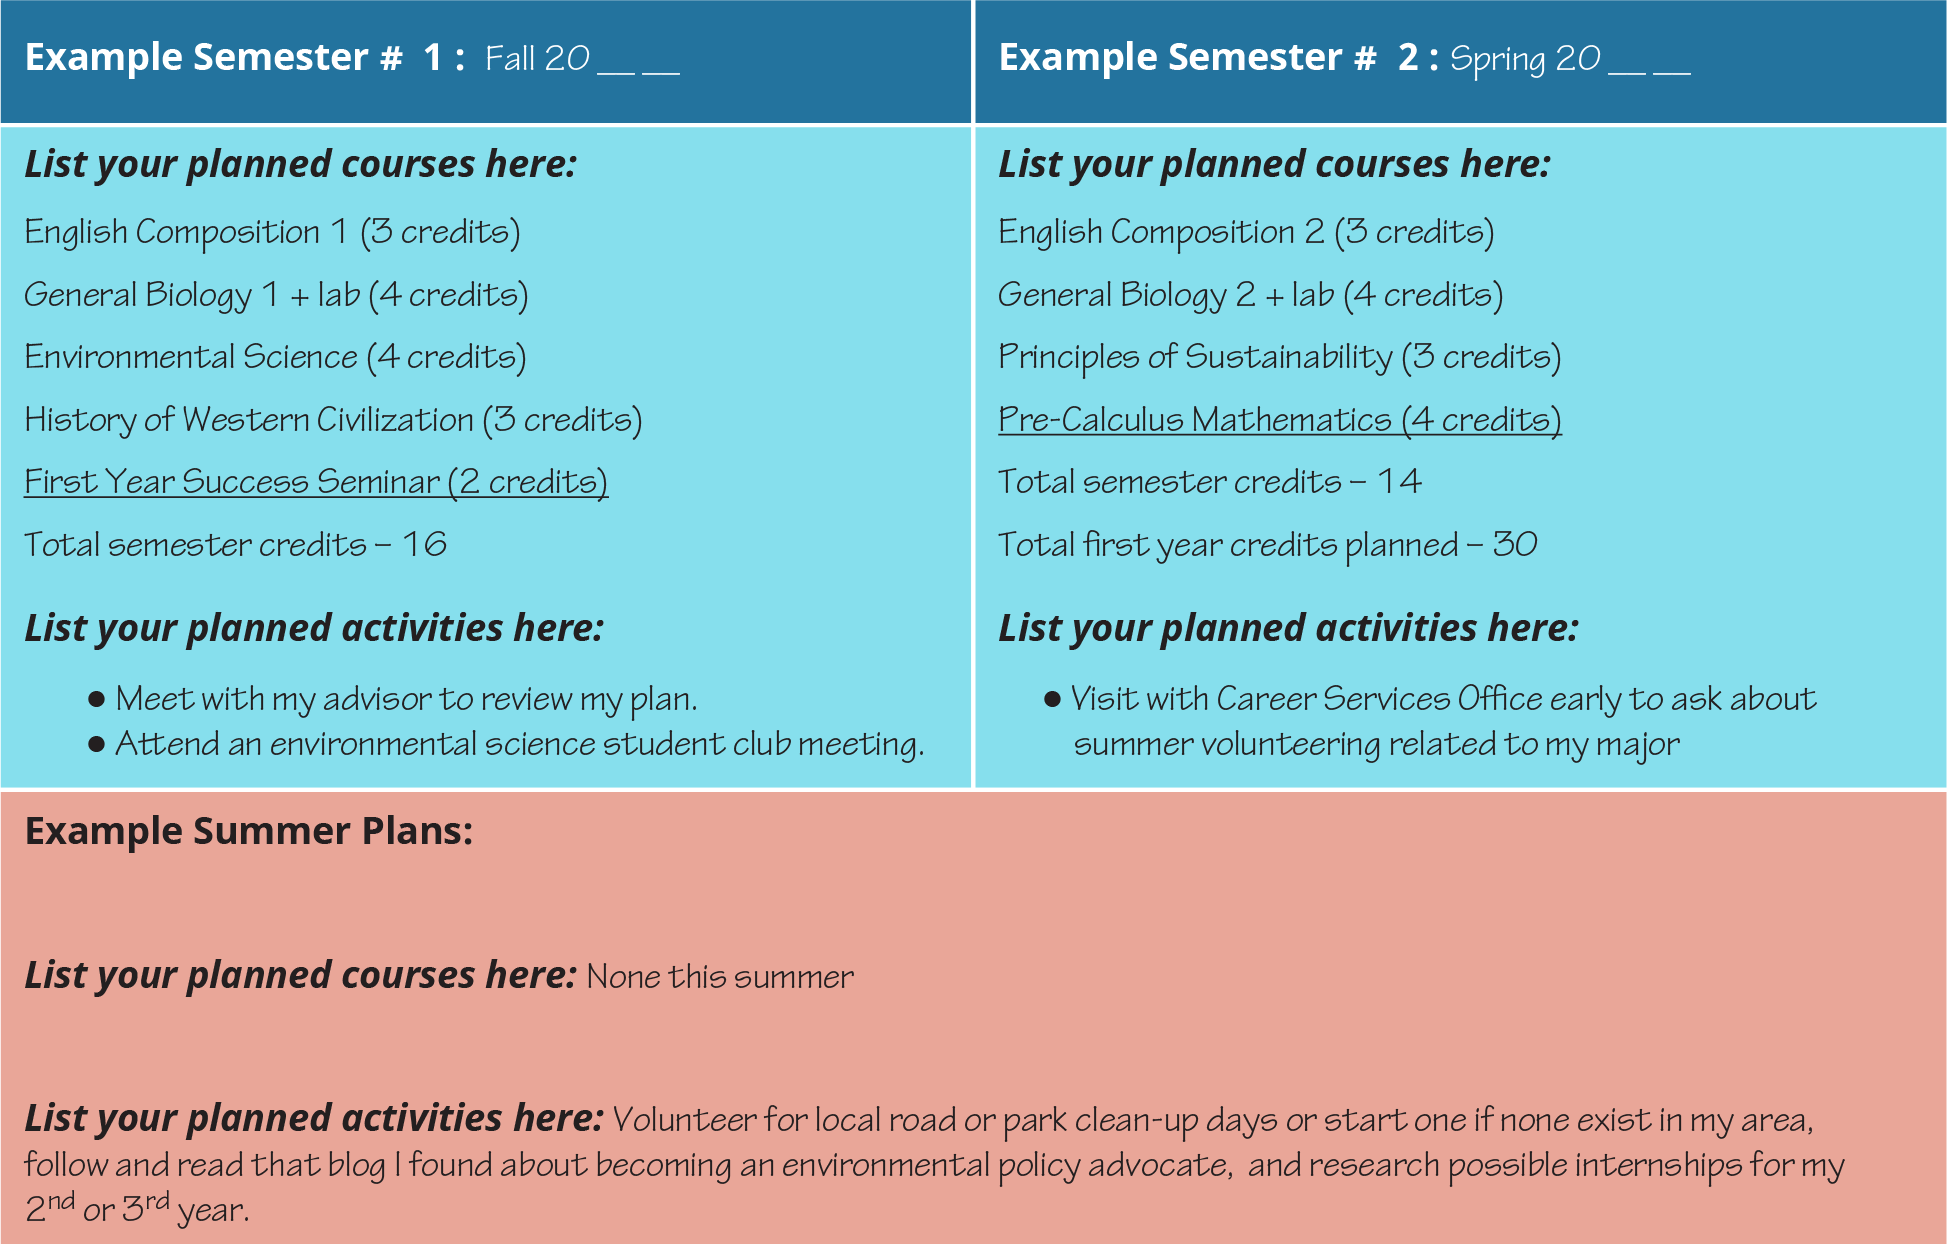 A sample grid diagram shows students' planning for different semesters, including planned activities, summer plans, and planned courses.